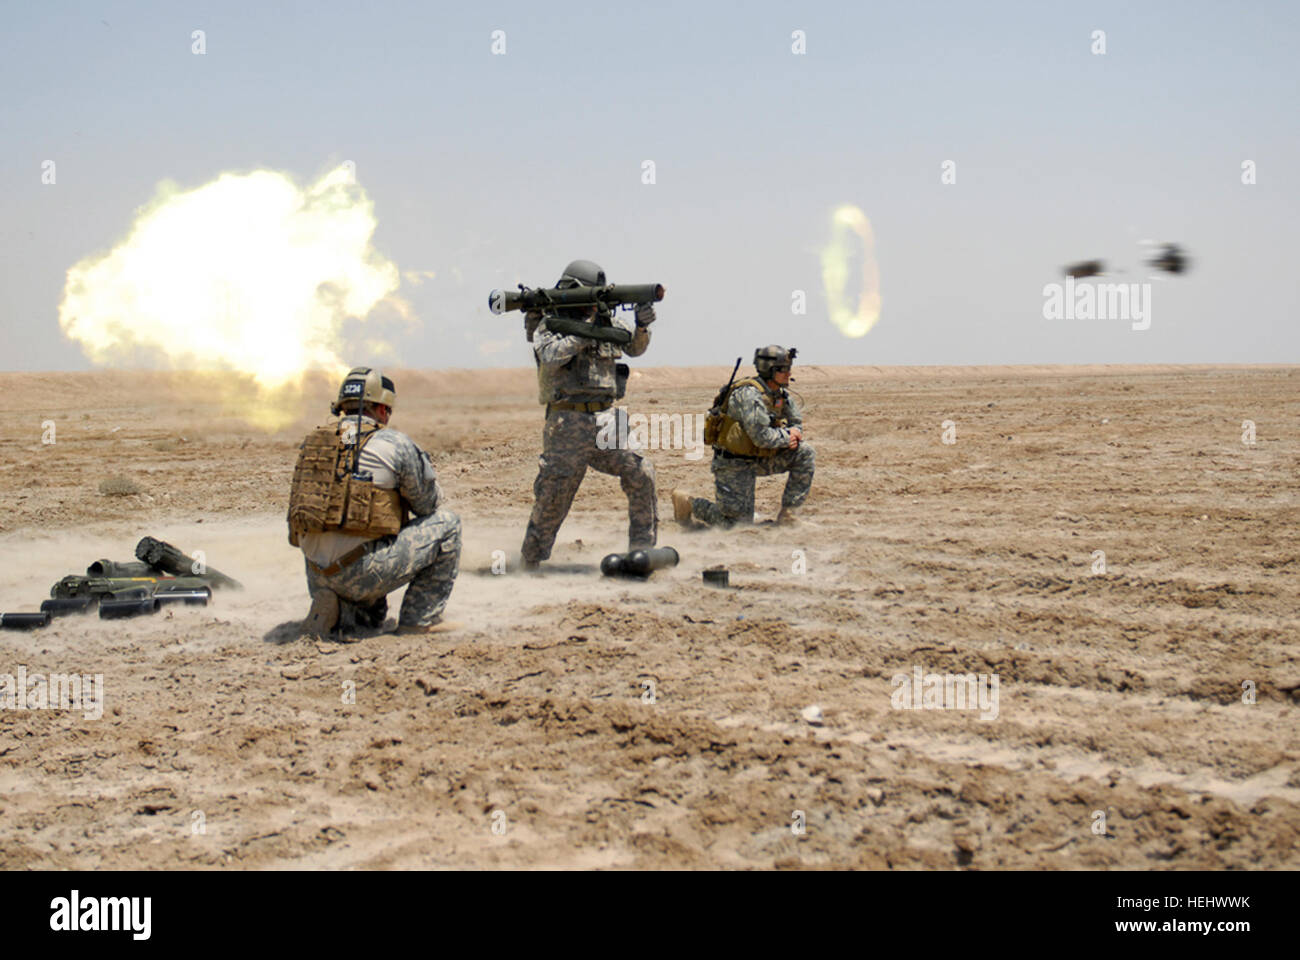 Entfernungsmesser Us Army : Us special forces soldaten mit operations task force